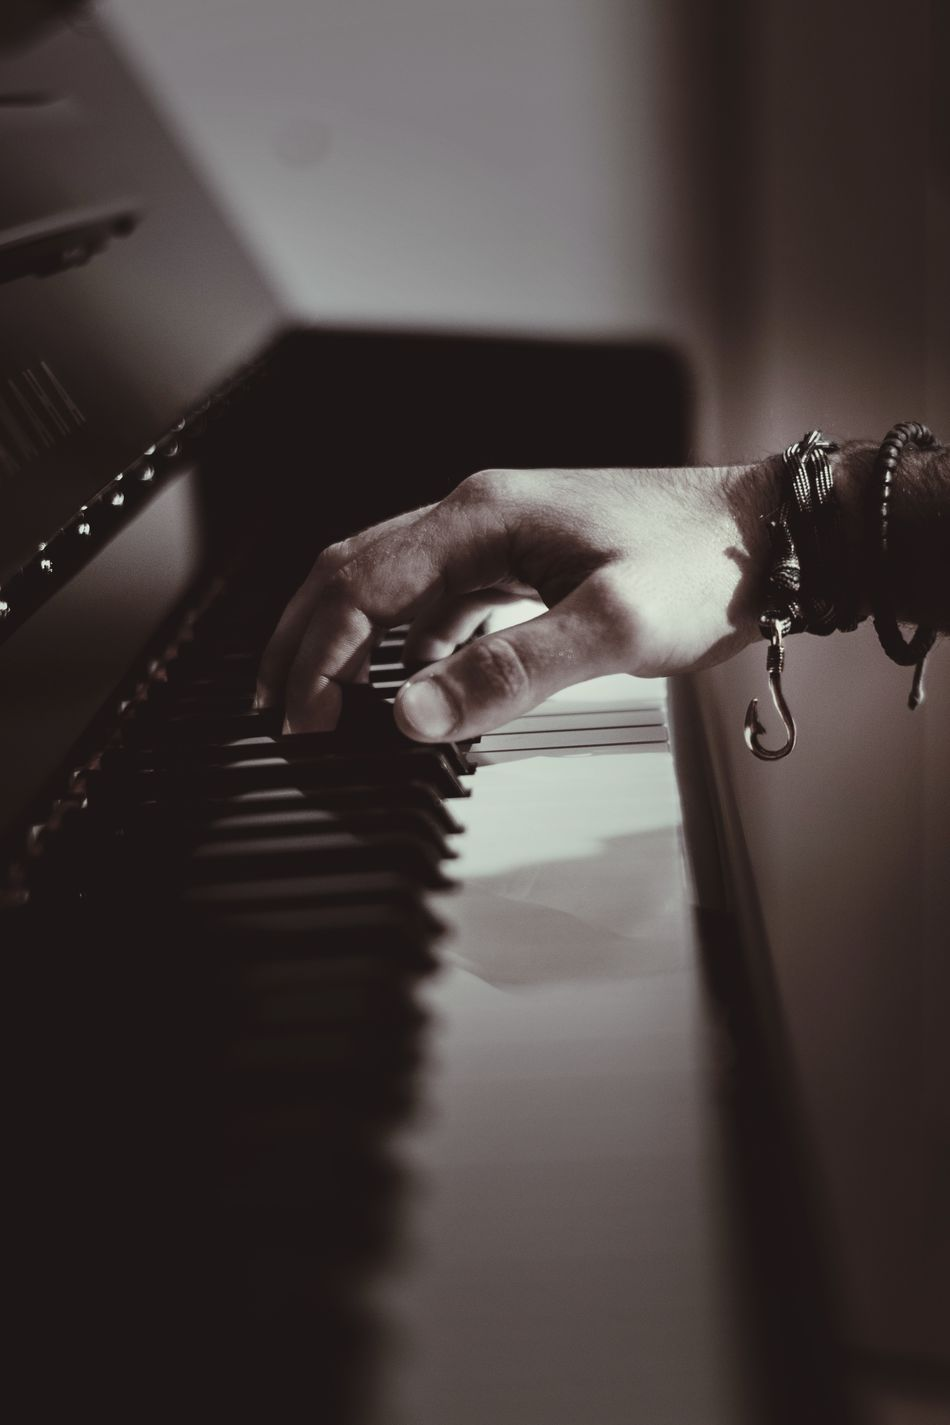 Piano Moments Human Hand Indoors  Close-up One Person Real People PianoSinfony Melodie Hook EyeEmNewHere